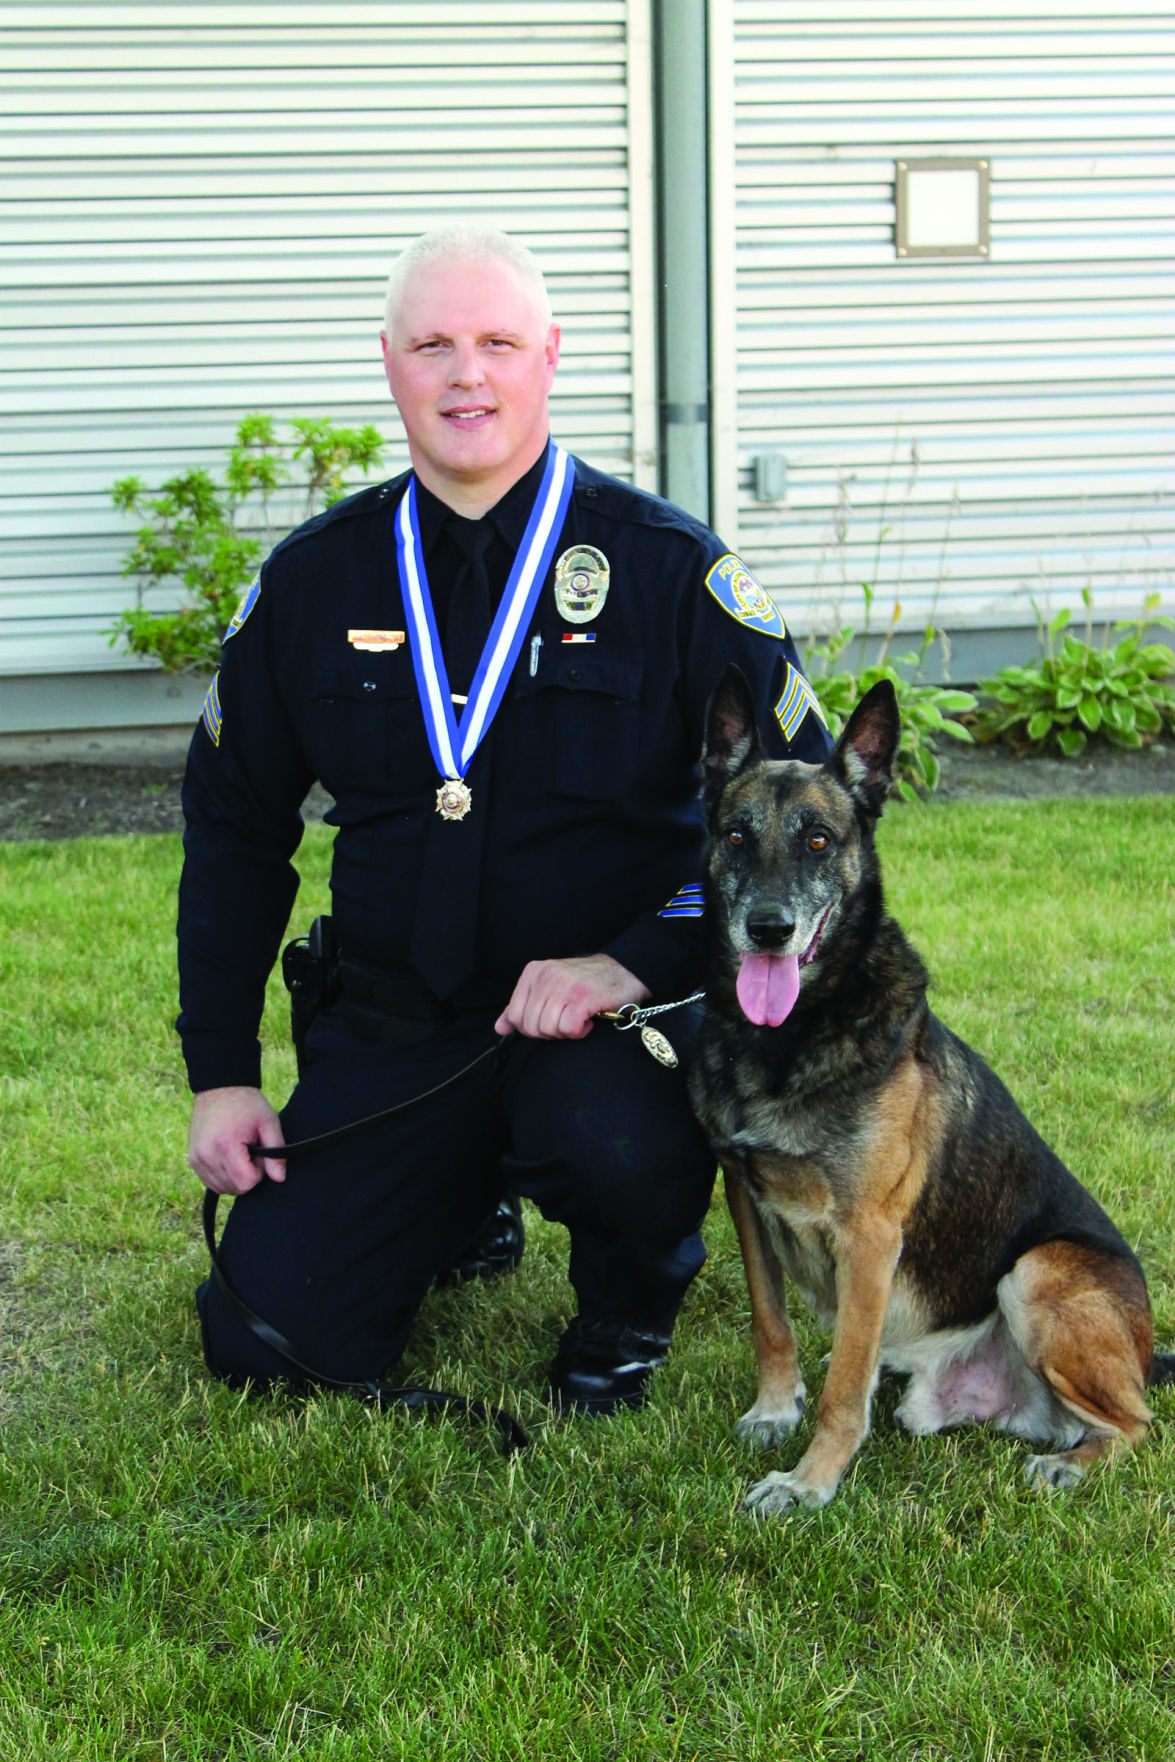 KFPD says goodbye to long-serving K-9 | Local News ...